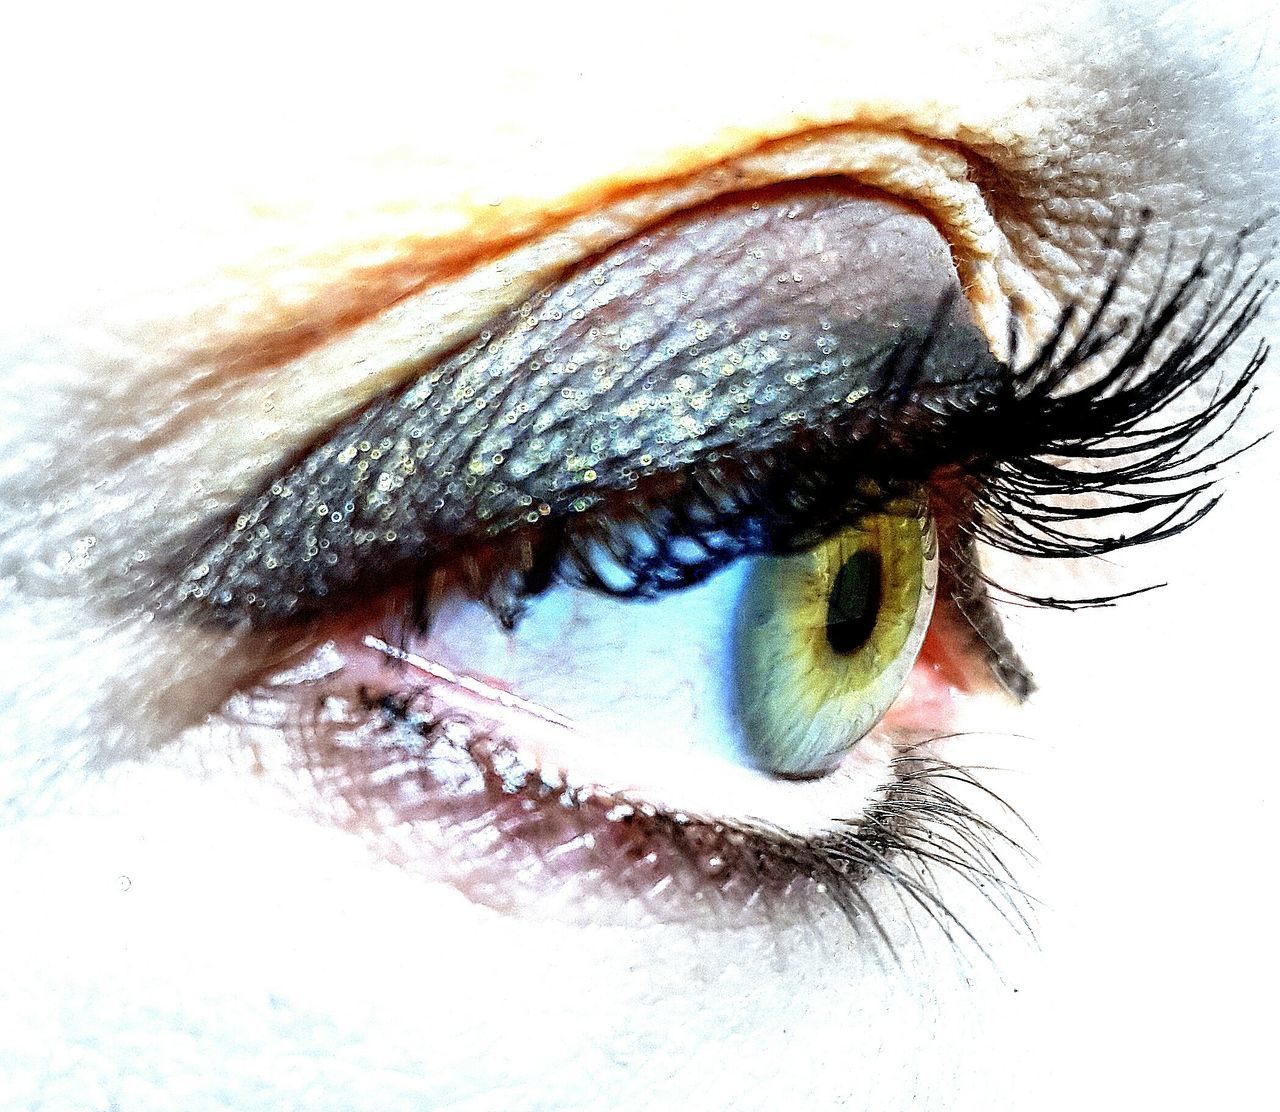 human eye, eyelash, looking at camera, eyesight, human body part, portrait, one person, eyeball, close-up, iris - eye, real people, sensory perception, eyebrow, day, people